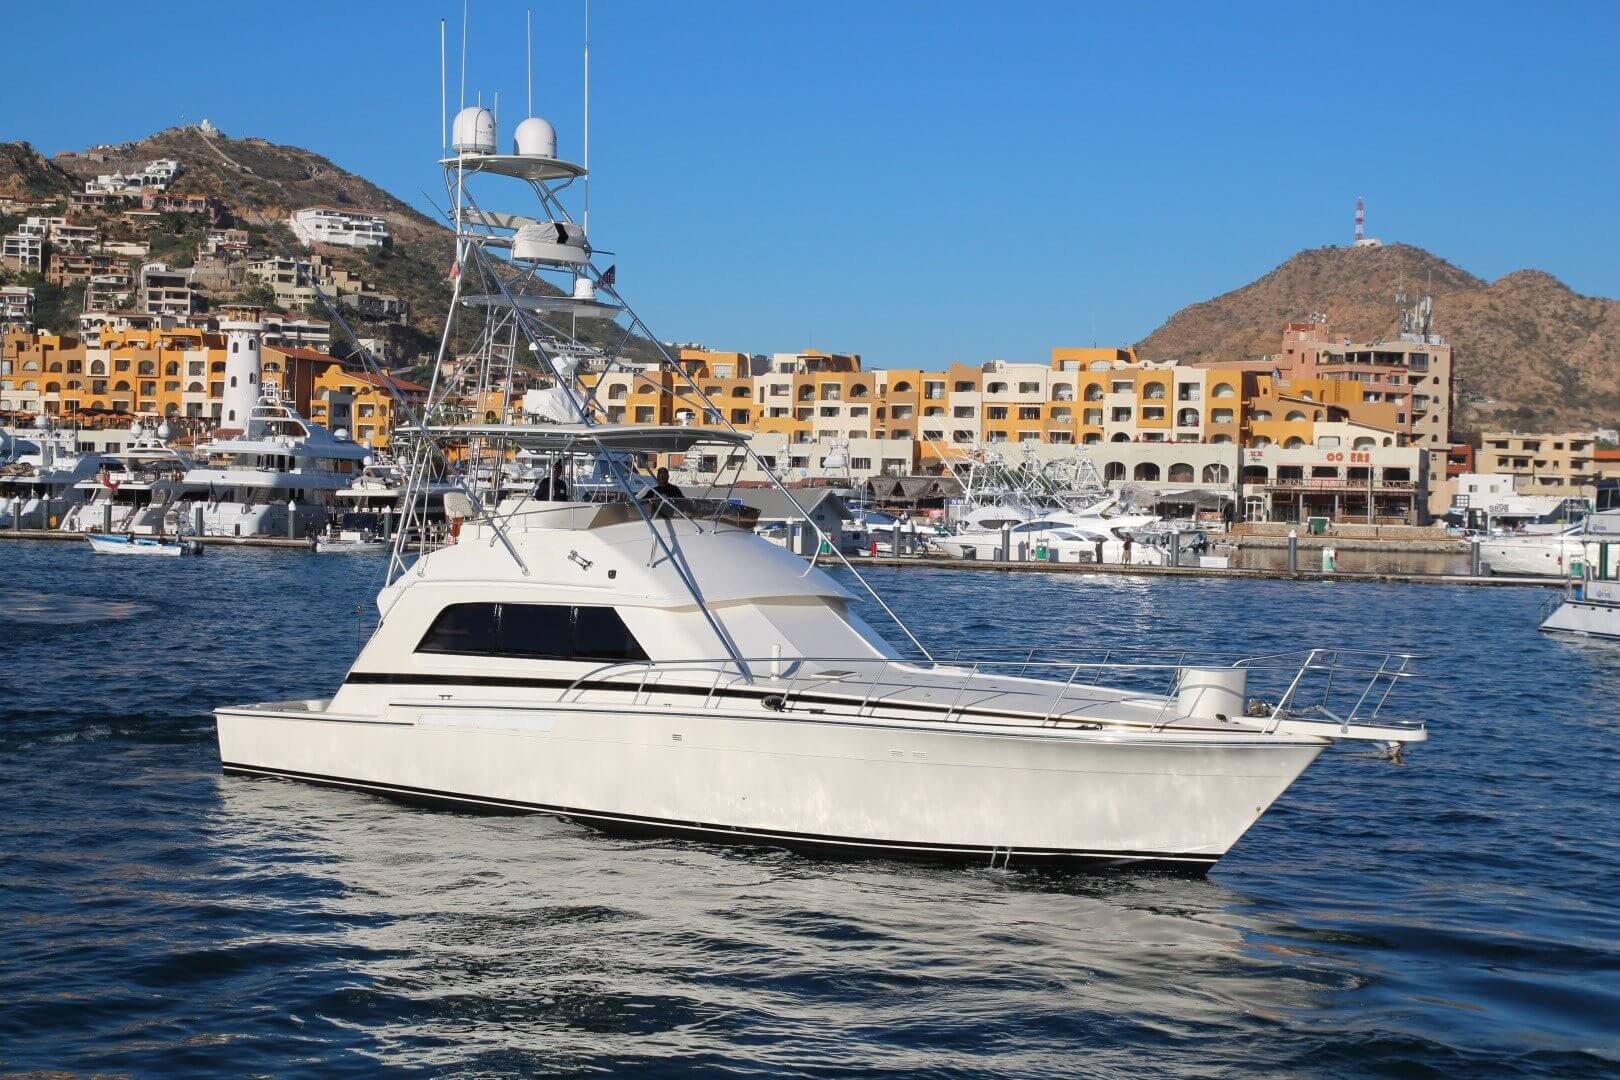 yacht charters cabo san lucas, cabo san lucas charter boats, luxury yacht charter cabo san lucas, cabo yacht rentals, cabo sportfishing, luxury charter yacht cabo san lucas, yacht charters cabo san lucas boat charters, boat charters cabo san lucas, yacht rentals cabo, yacht in cabo san lucas, yachts cabo san lucas, los cabos yacht charter, san jose del cabo yacht charters, cabo charter yacht, cabo san lucas yacht charter, yacht charters cabo cabo, yacht charters, yachts in cabo san lucas, charter boats in cabo san lucas, cabo yacht charter, boat charter cabo san lucas, yacht charters in cabo, yachts in cabo cabo san lucas yachts, luxury yacht rental in cabo san lucas, private yacht rental cabo san lucas, los cabos yacht, cabo san lucas yacht rentals, yacht rentals cabo san lucas, cabo san lucas yacht, private yacht charter cabo san lucas, private yacht charters to cabo, day yacht charters cabo san lucas, luxury yachts cabo yacht cabo san lucas, cabo yachts for charter, yacht in cabo yacht cabo, private yacht cabo san lucas, yacht los cabos, boat charter cabo san lucas mexico, yacht charter los cabos, yachts cabo cabo, charter boats cabo boat charters, day yacht charters cabo, cabo luxury yacht charter, cabo yacht, cabo private yacht charter, yacht charter cabo, yacht party rental, yacht party rentals, rent a yacht for a party, how much does it cost to rent a yacht for a party, party yacht rental, boat party rental, yacht party, rent a party yacht, birthday party on a boat, rent yacht for a party, party boat rental, yacht rental, party boat rentals near me, boat rental, boat party rental, luxury yacht, charter boat, rent a boat, rent a party boat, pontoon rentals in san diego, yacht rentals in san diego, rent yacht in san diego, rent boat in san diego harbor, can you rent boats in san diego, which rent boats in san diego, rent boat in san diego, rent a party boat in san diego, boat rental san diego pacific beach, boat rental san diego cheap, boat rental san diego wit